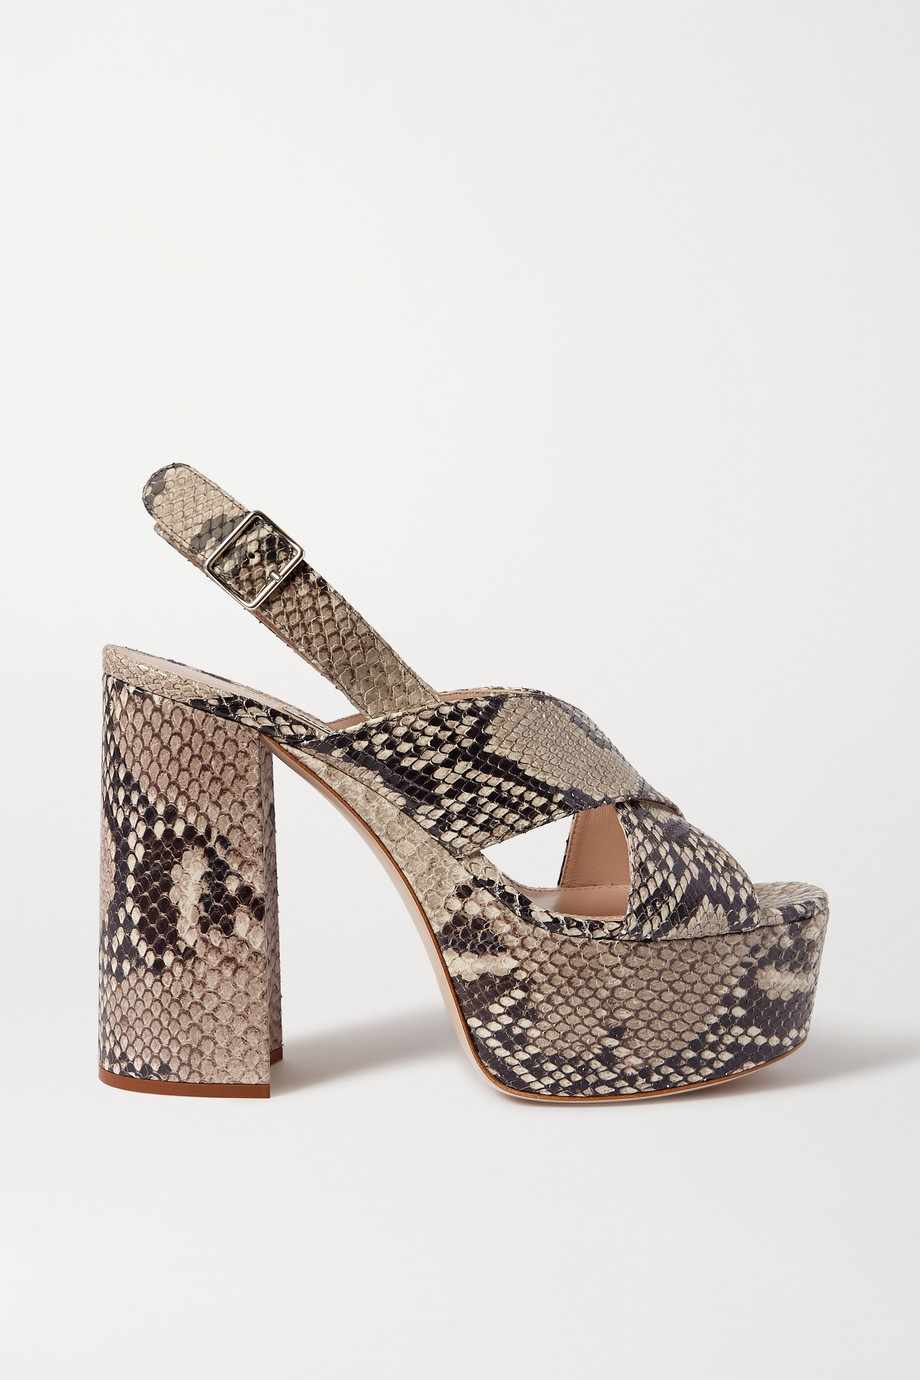 Miu Miu Snake-effect leather platform sandals